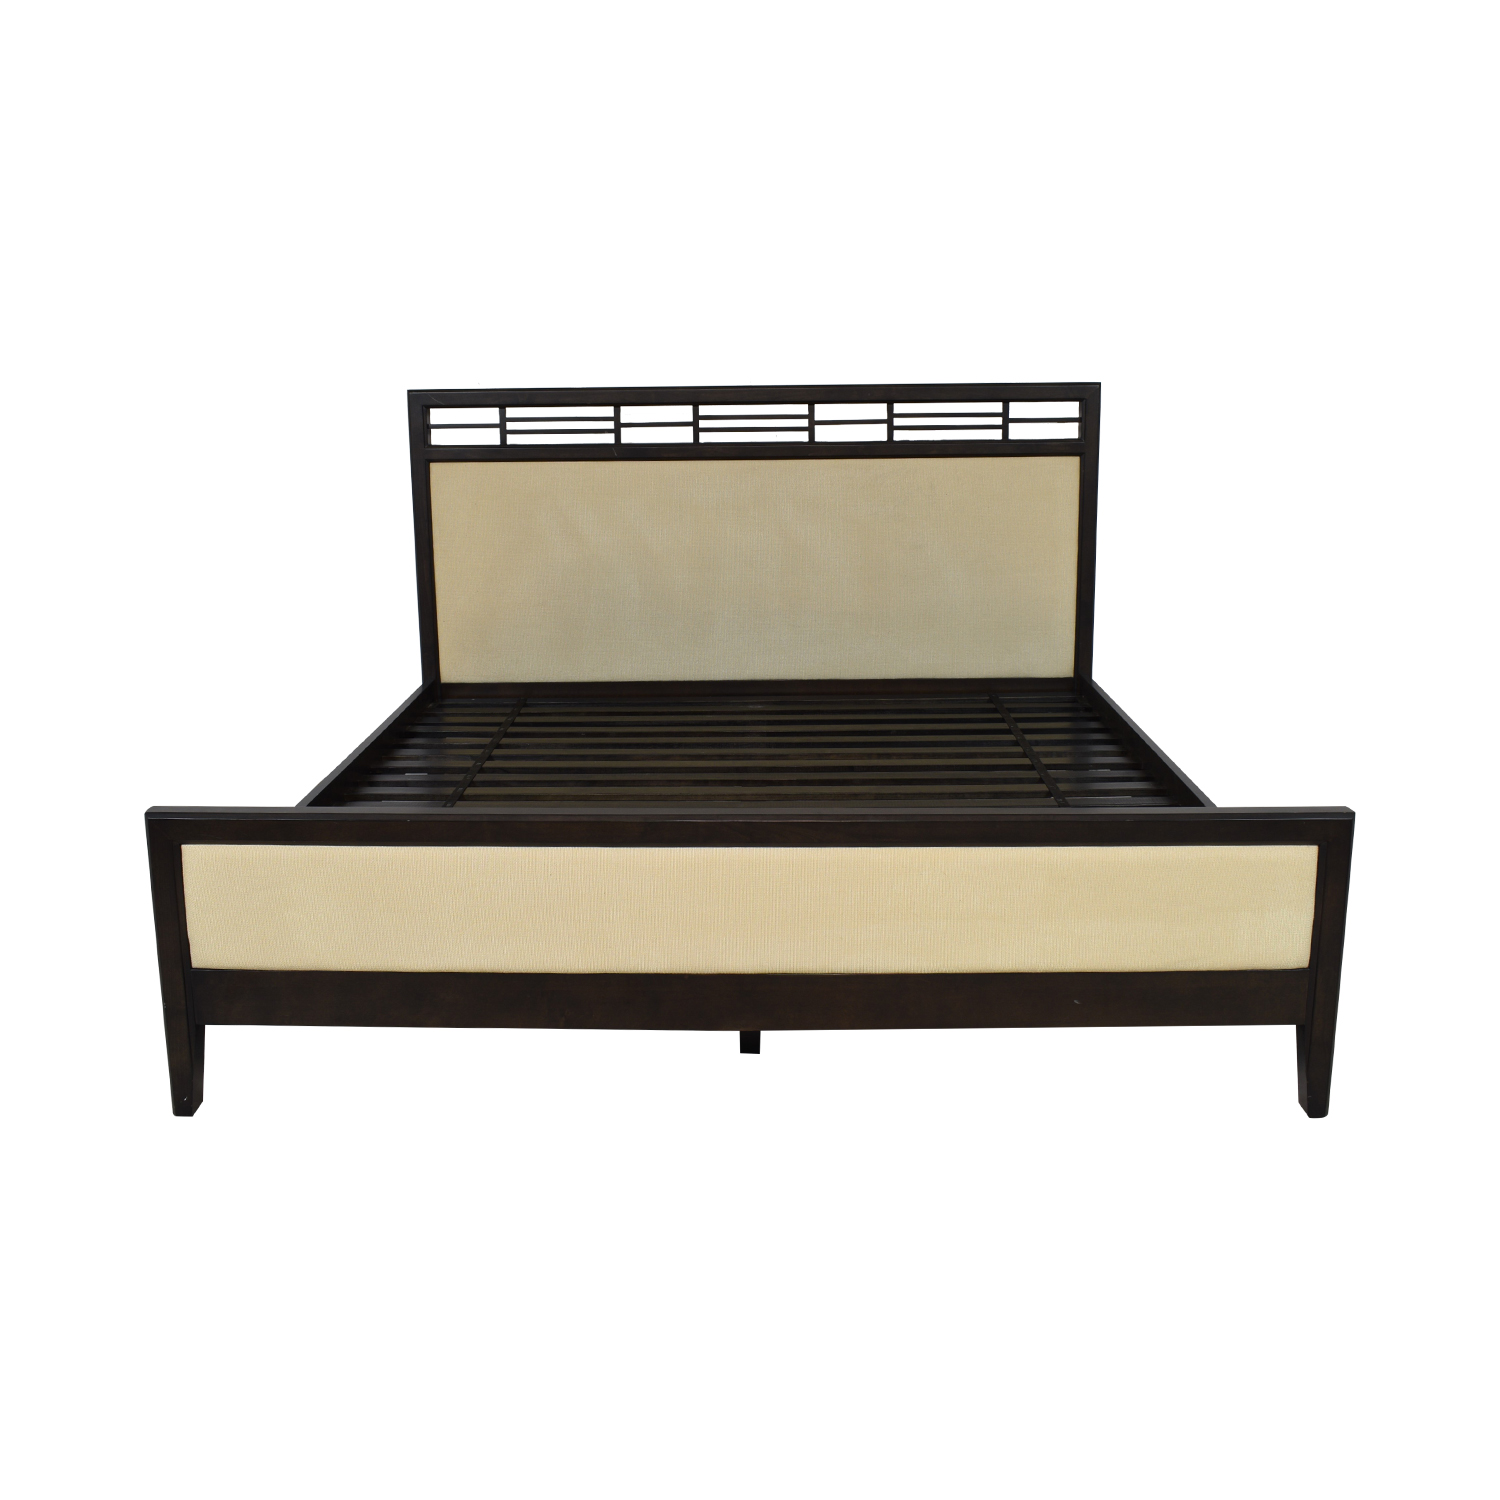 Crate & Barrel Crate & Barrel Master King Bed ma